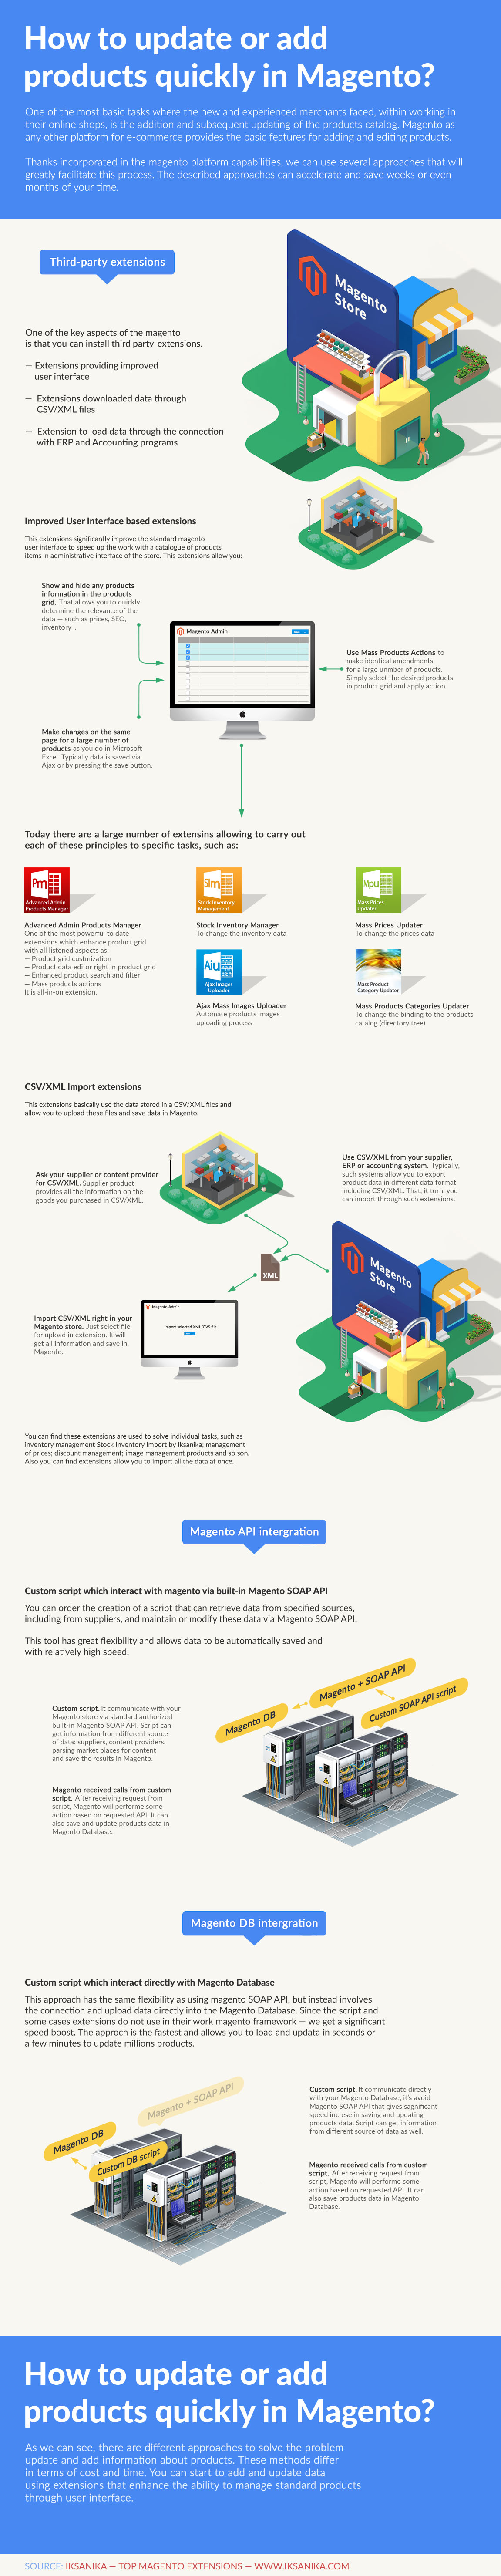 How to update products in magento quickly. Infographic.